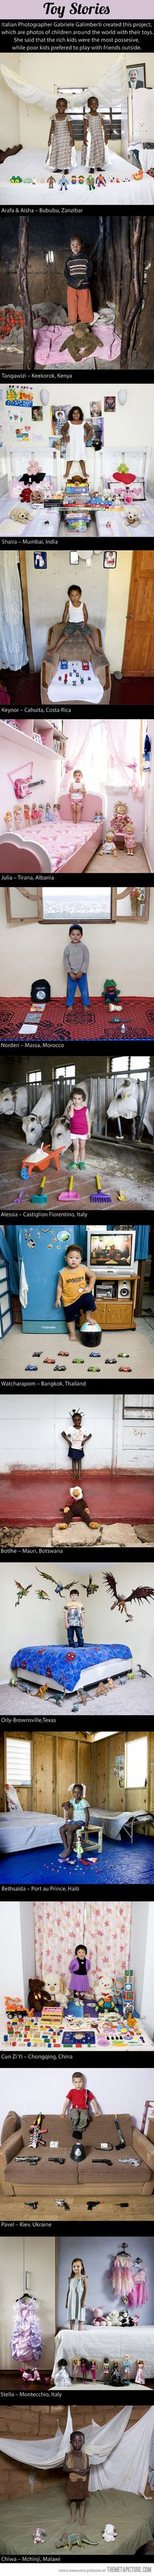 Italian photographer Gabriele Galimberti created this project, which are photos of children around the world with their toys. She said that the rich kids were the most possessive, while poor kids preferred to play with friends outside.